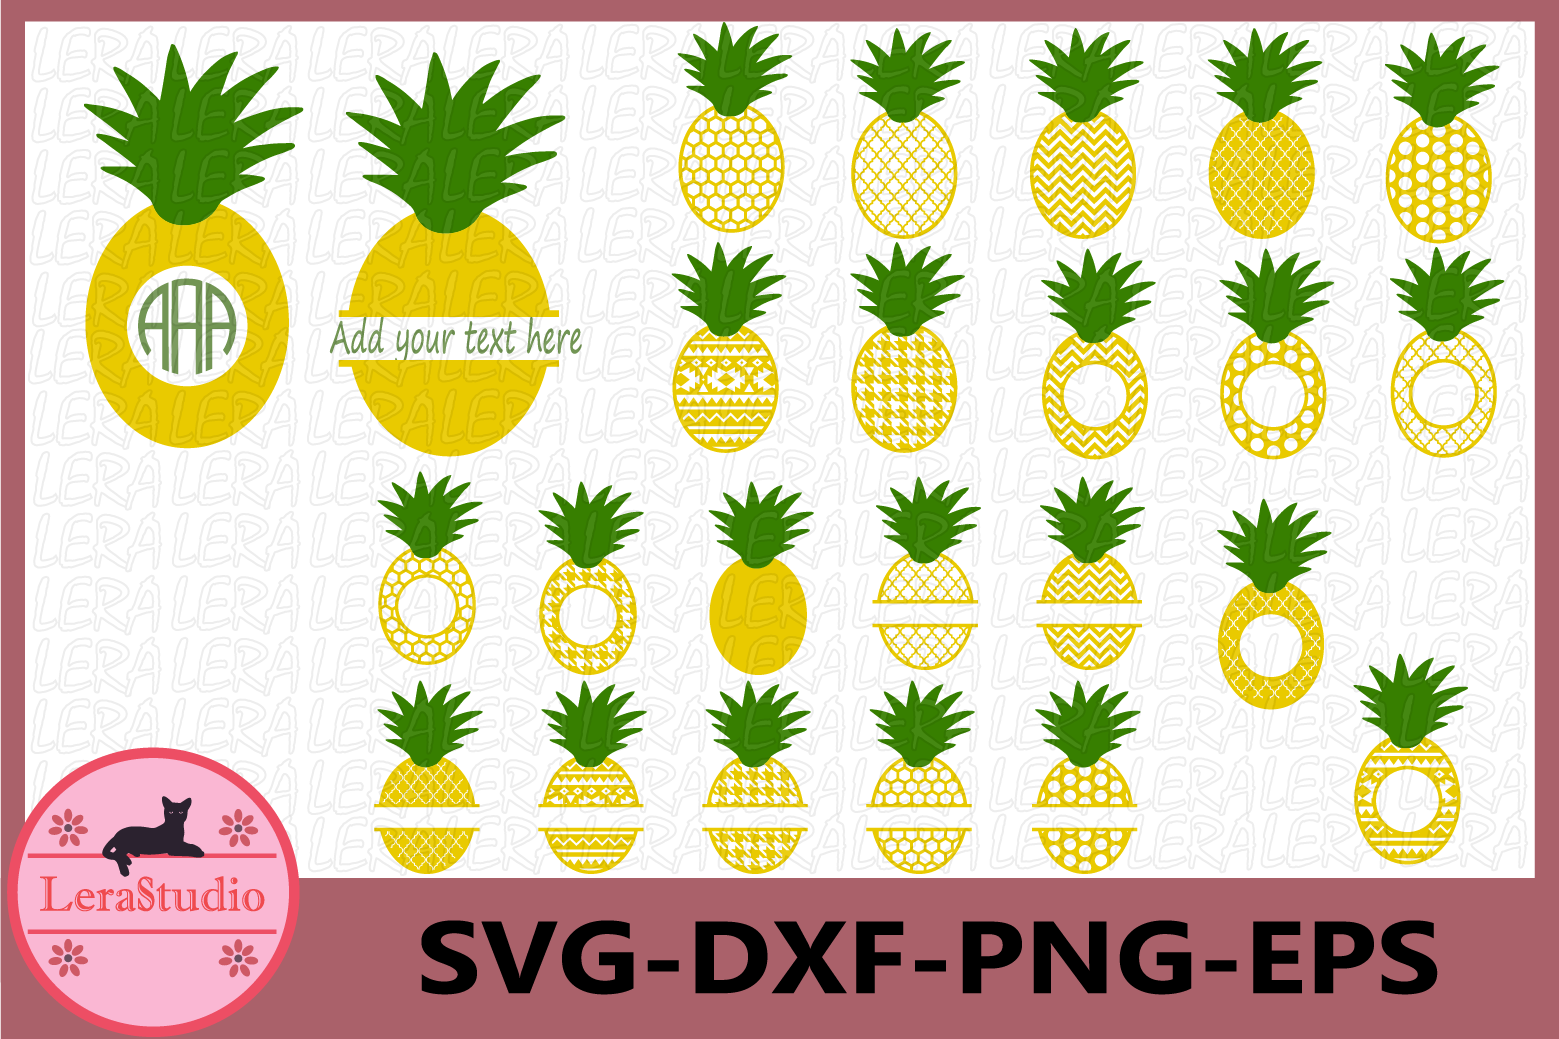 Pineapple Monogram SVG, Pineapples SVG File, Pineapple Svg example image 1